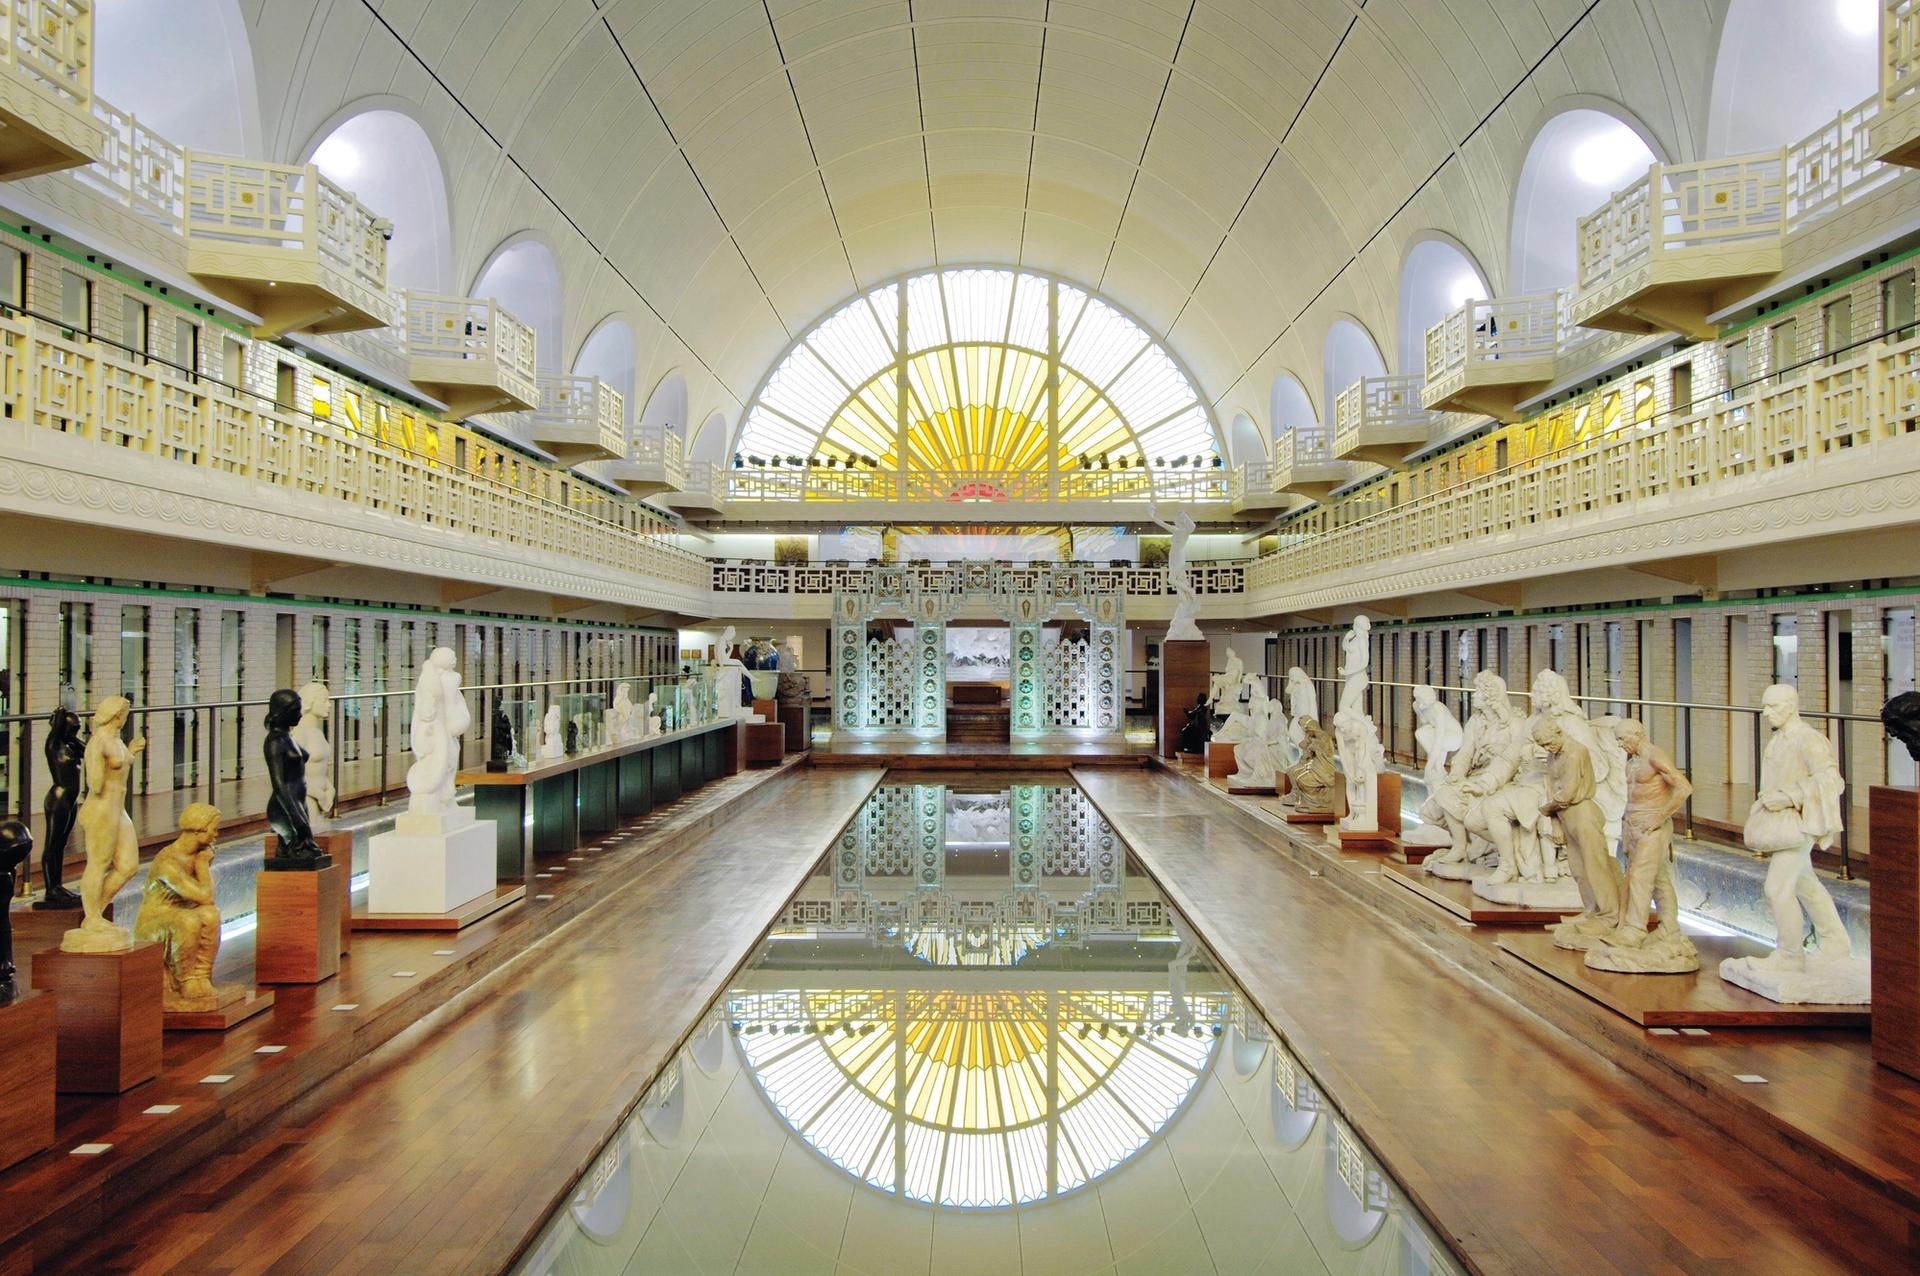 The converted 1930s baths complex has been expanded by the architect of the Musée d'Orsay in Paris, Jean-Paul Philippon Photo: Alain Leprince/MAIAD Roubaix